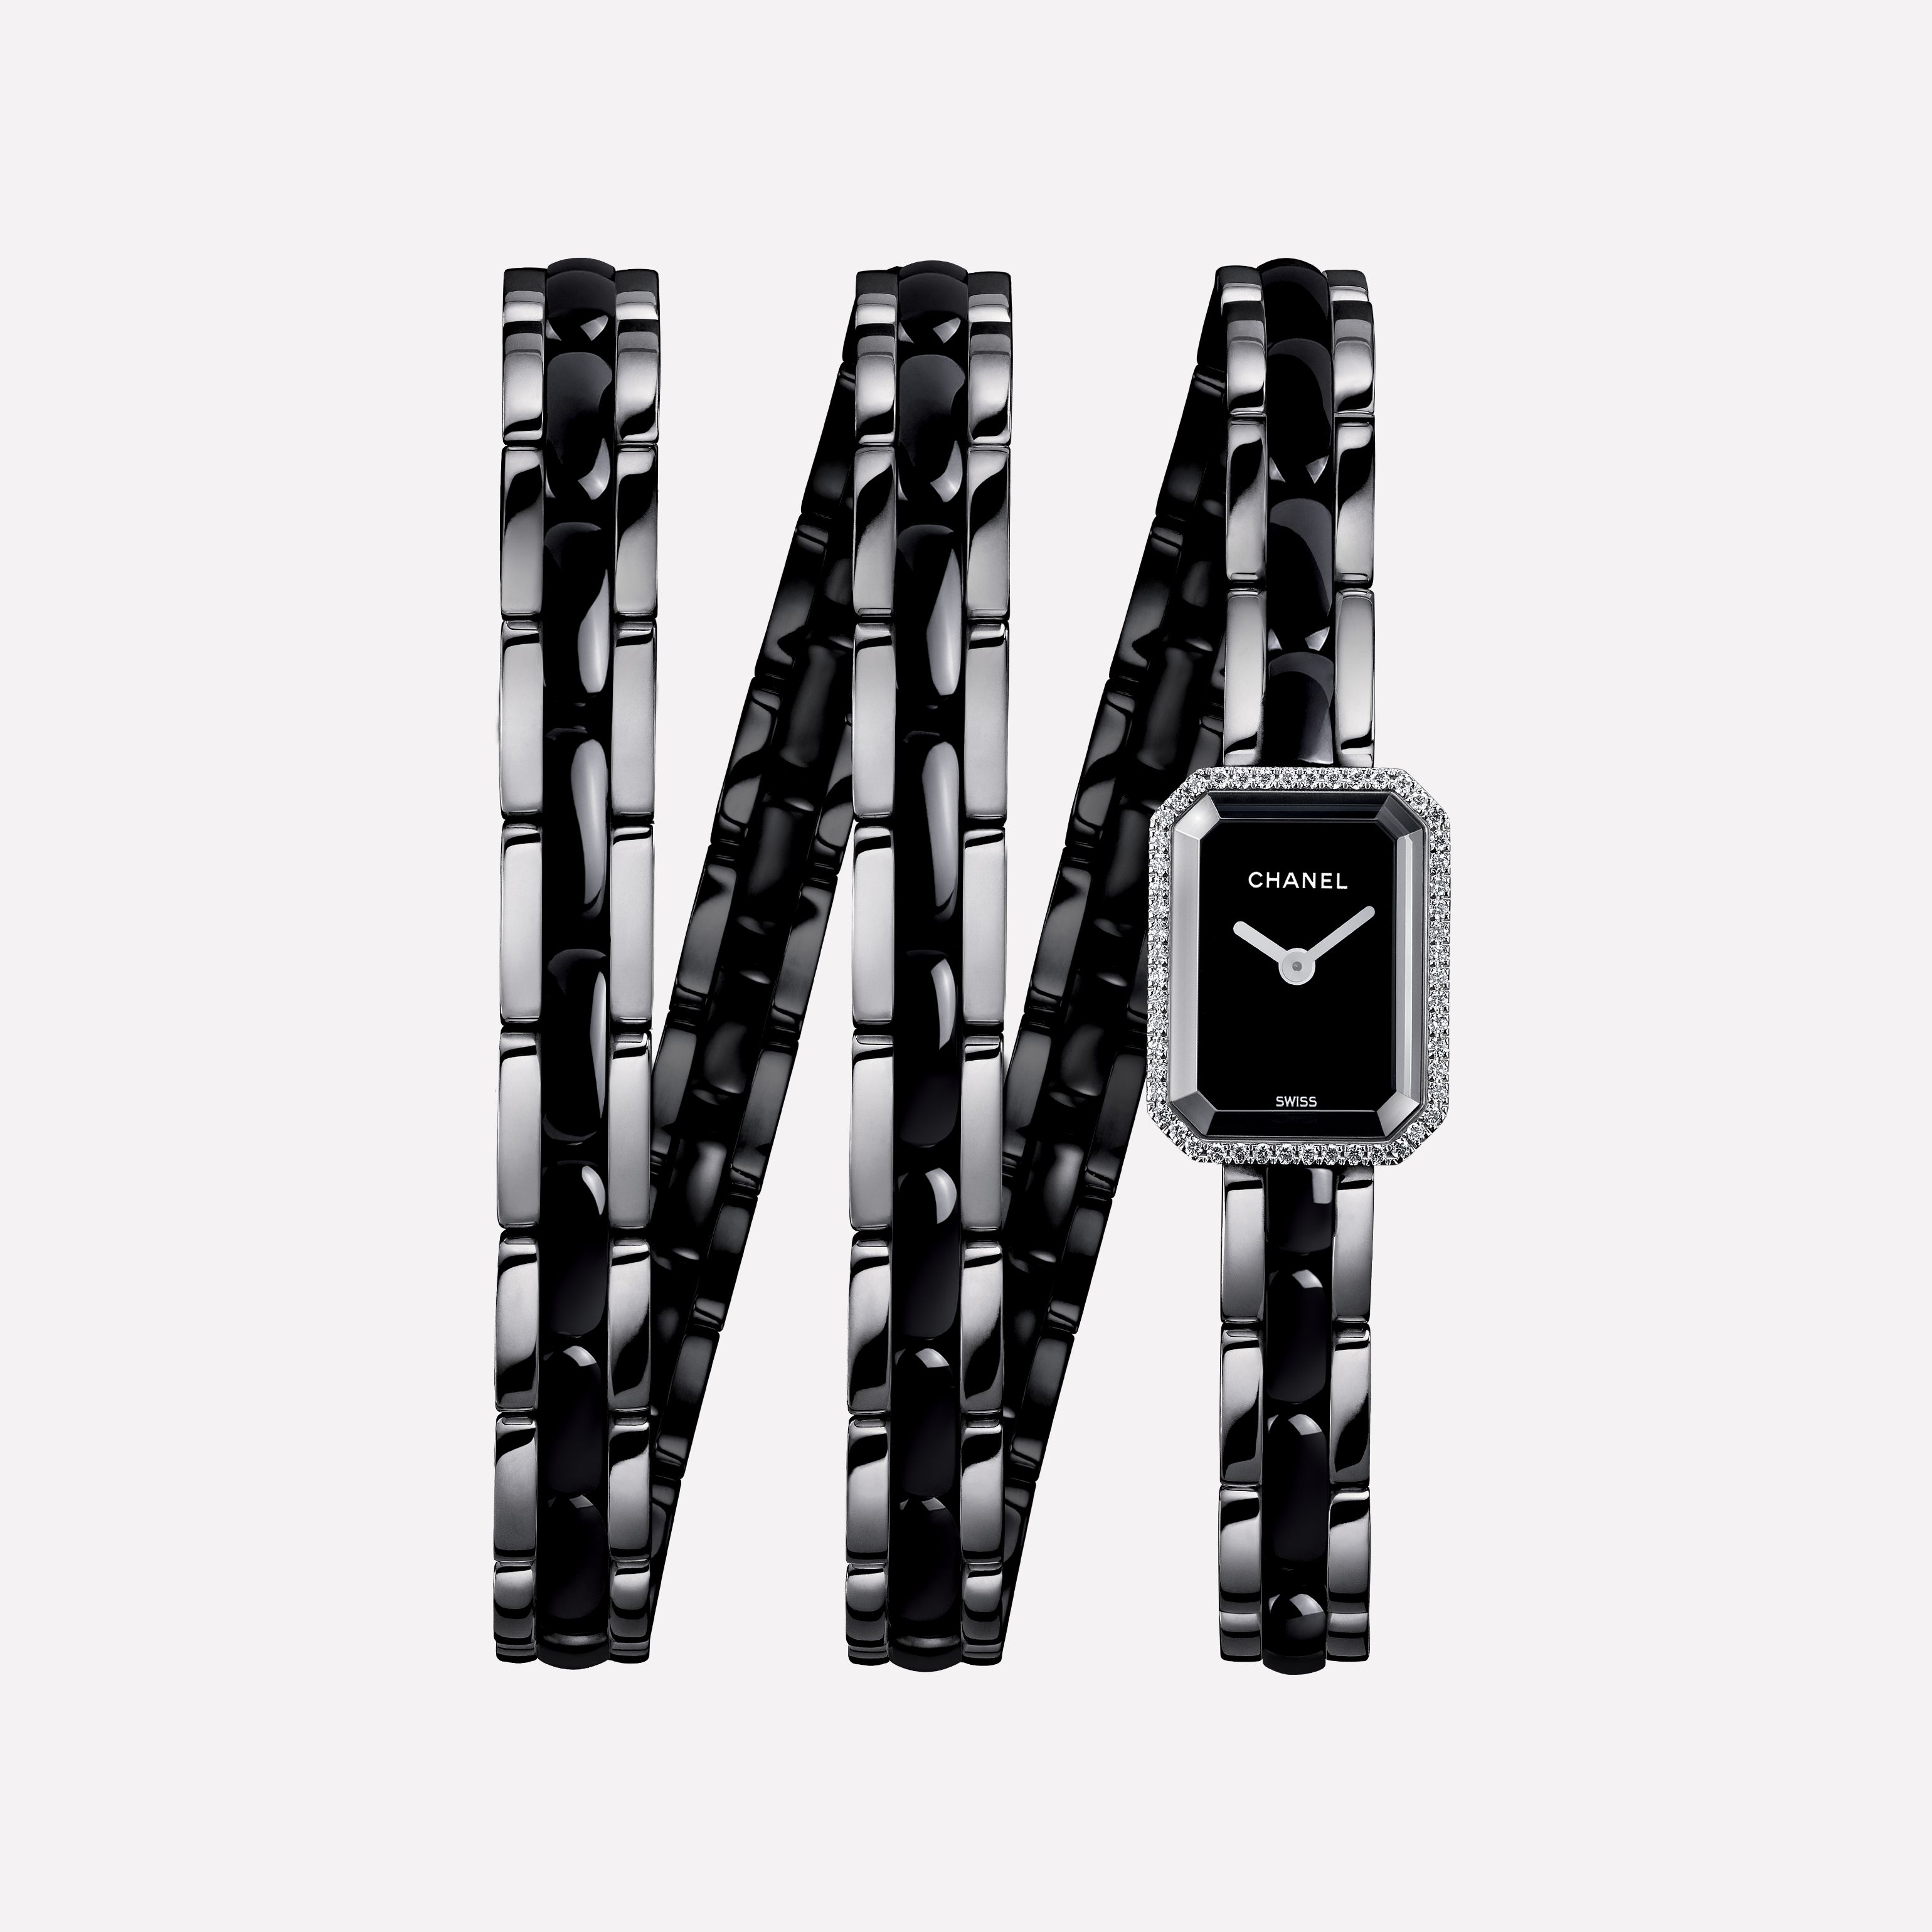 Chase Durer Replica Watches